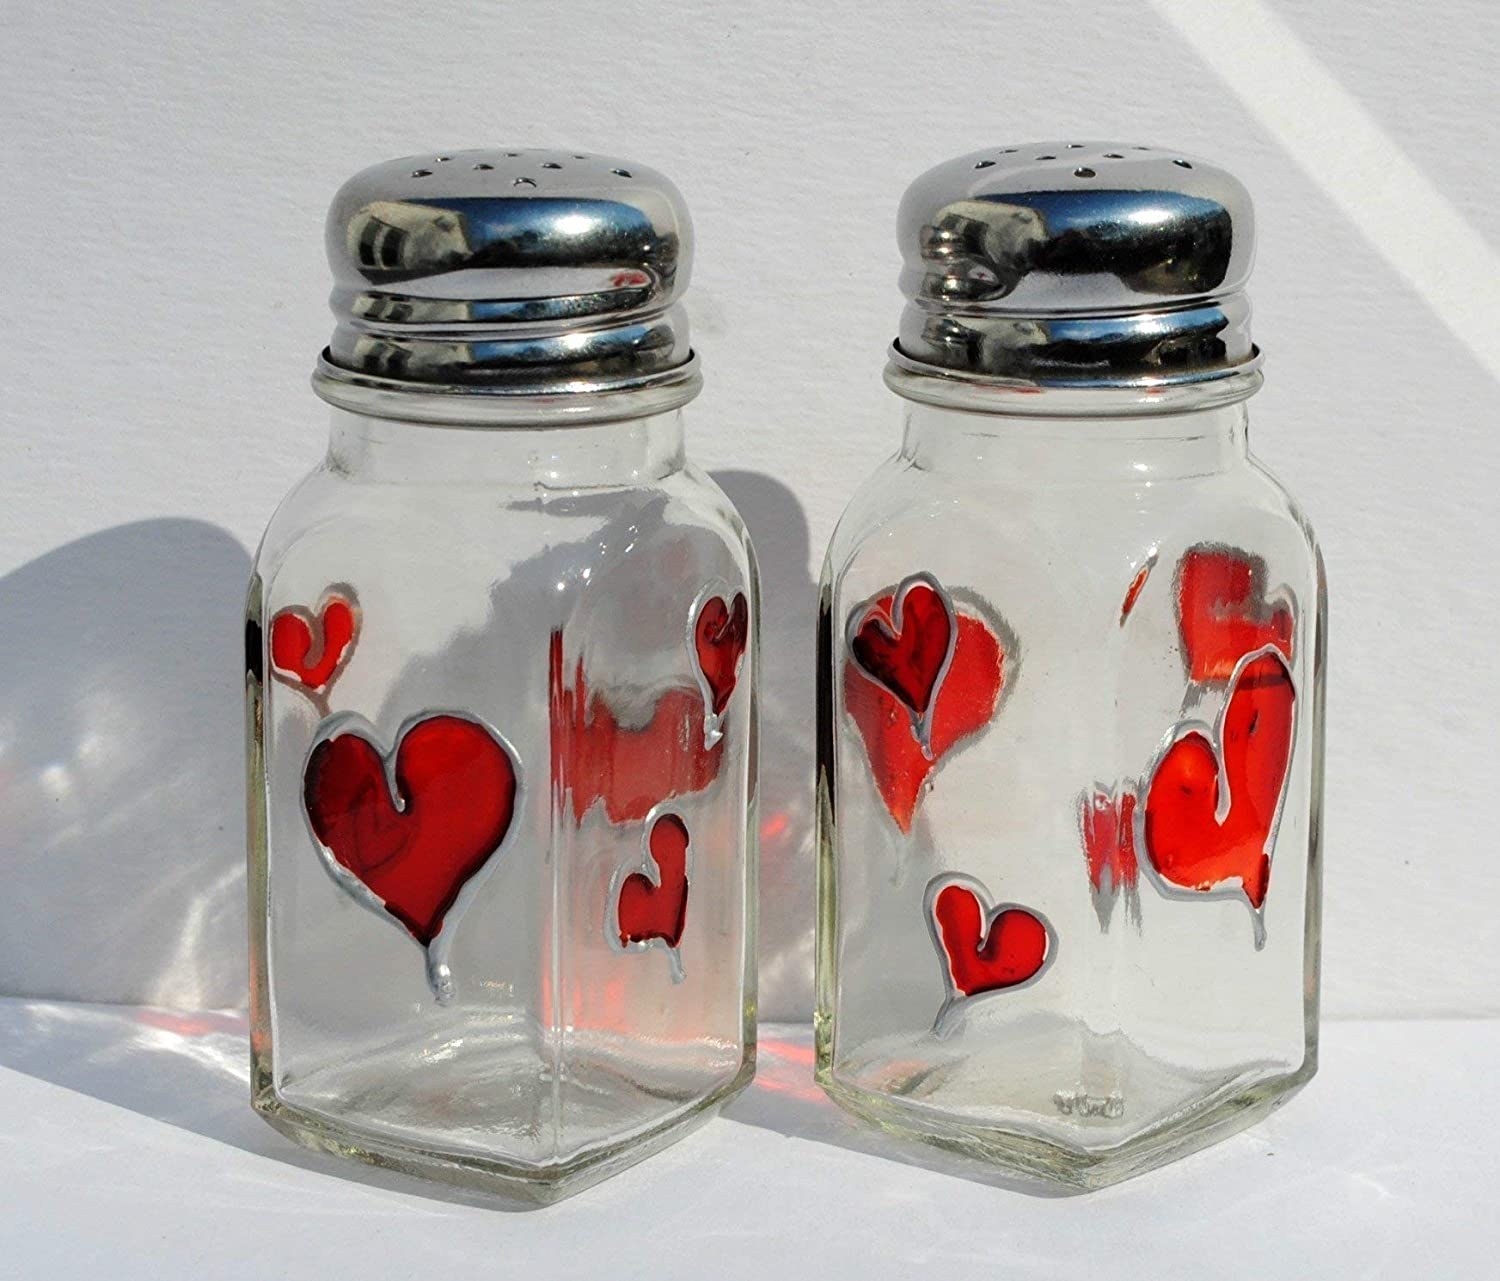 Red Hearts Hand Painted Glass Salt & Pepper Shakers Set, Kitchen Decor